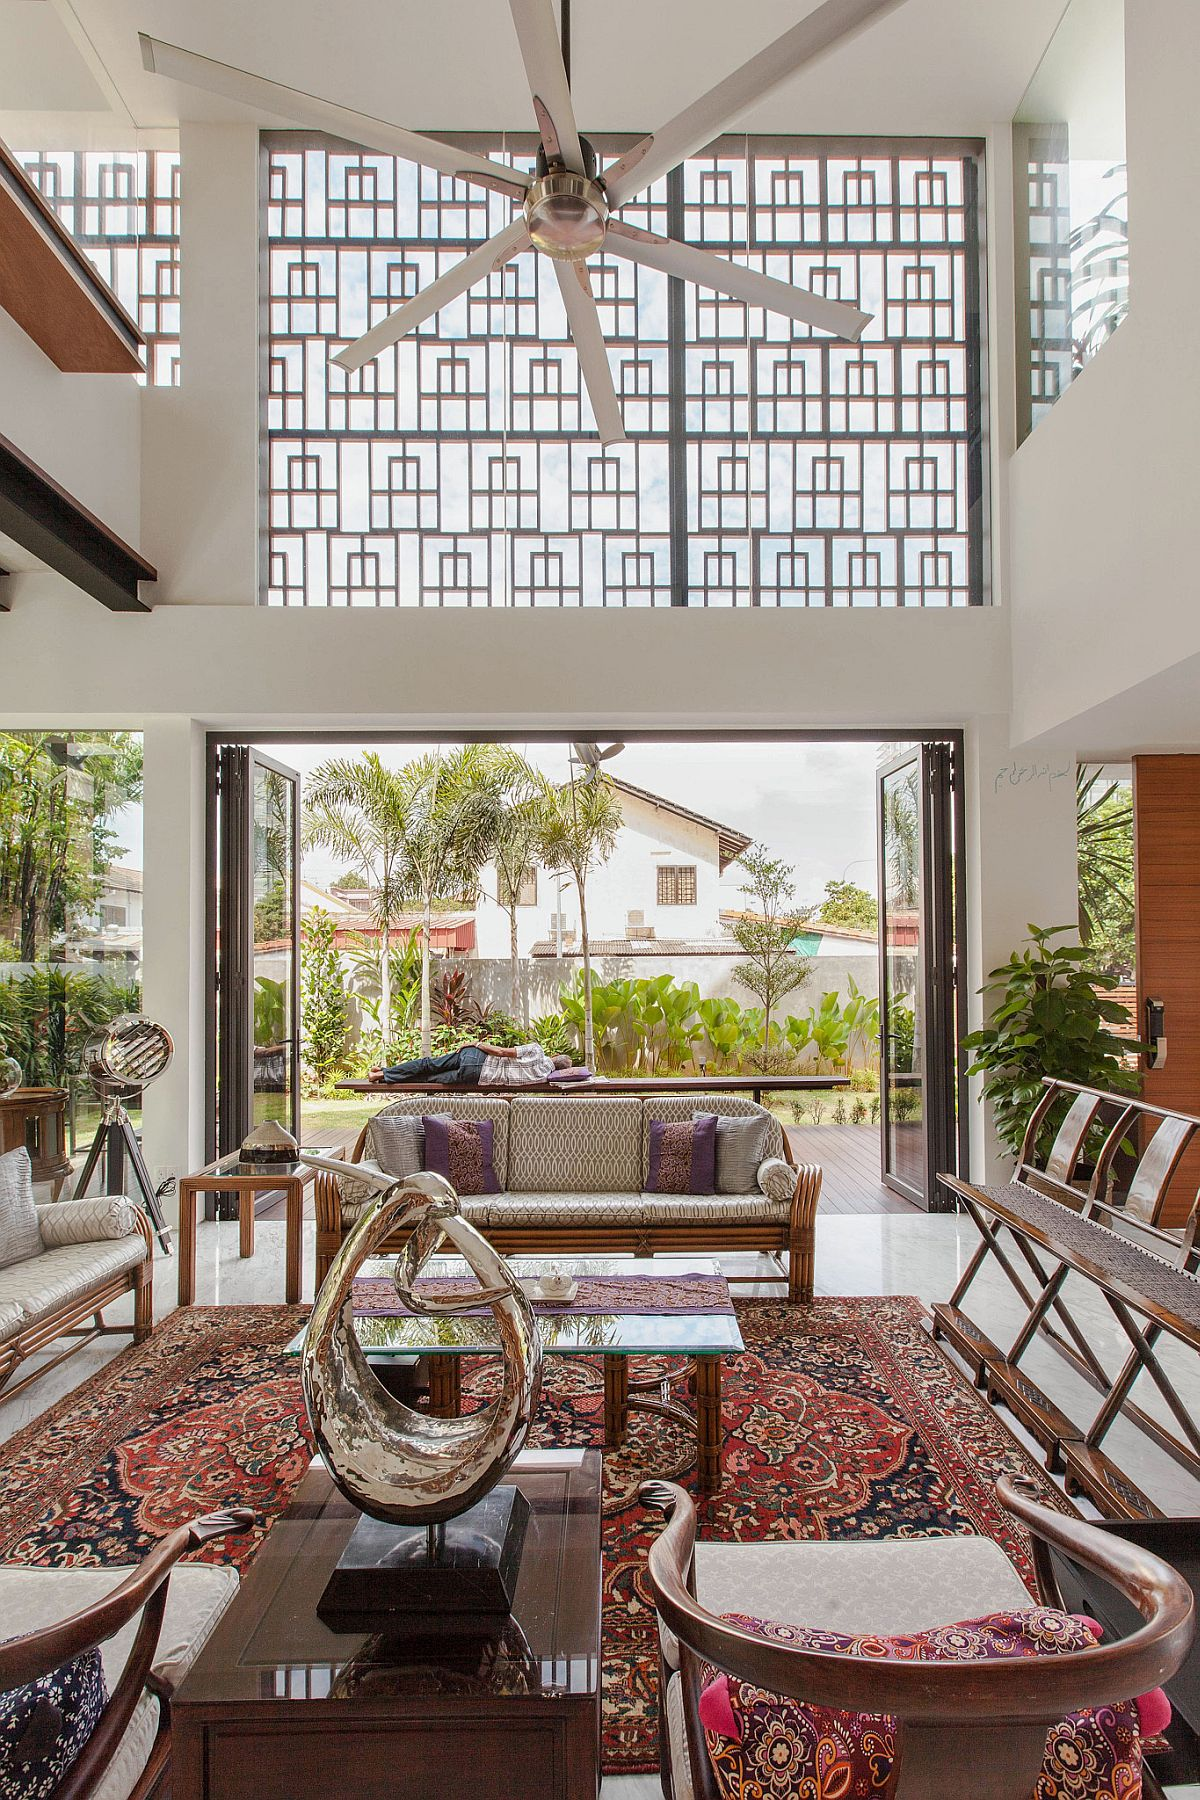 View In Gallery Colorful And Intricate Rug Binds Together The Decor In The  Open Living Space